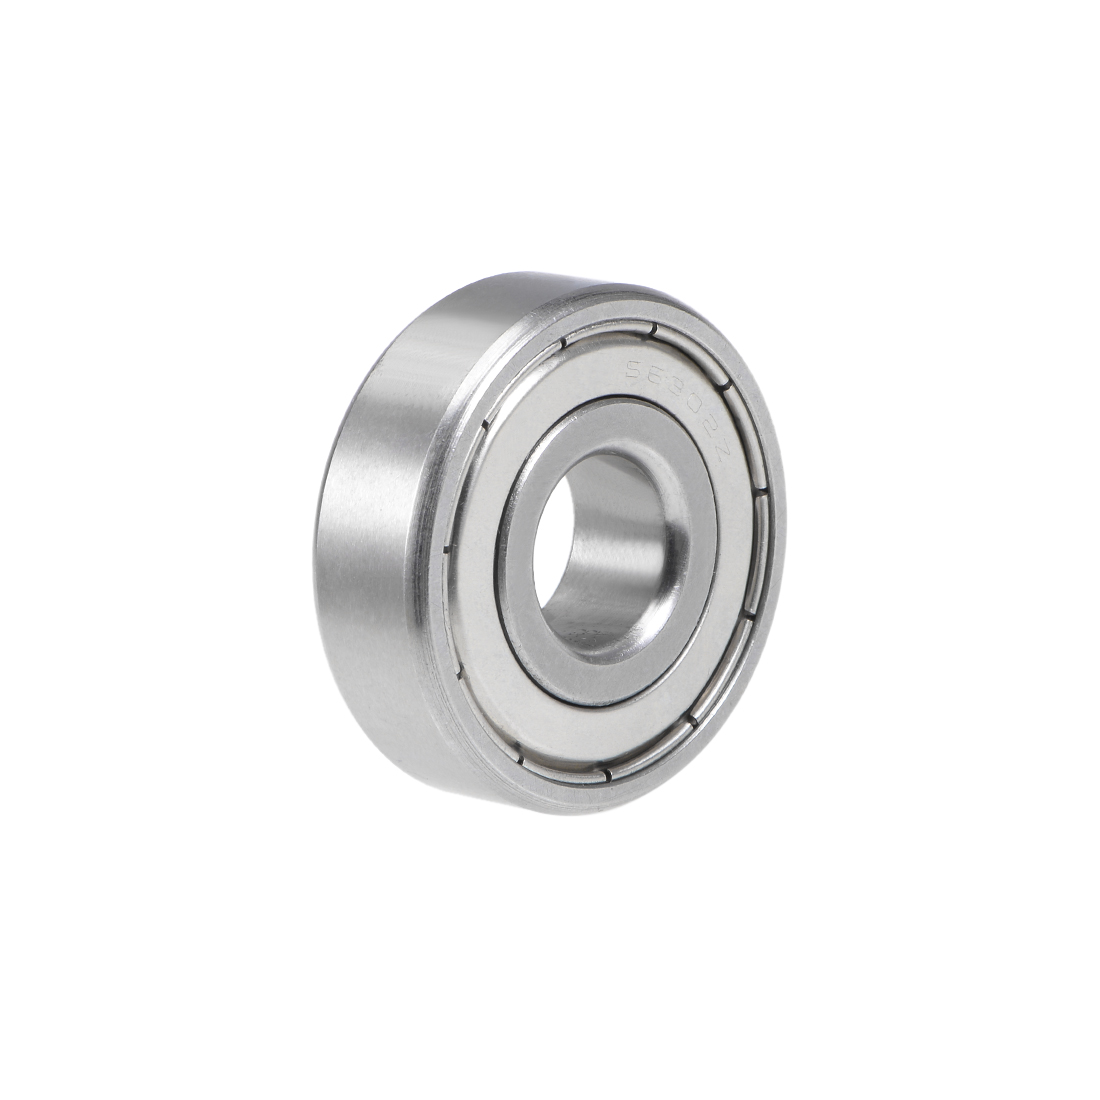 S6302ZZ Stainless Steel Ball Bearing 15x42x13mm Double Shielded 6302Z Bearings